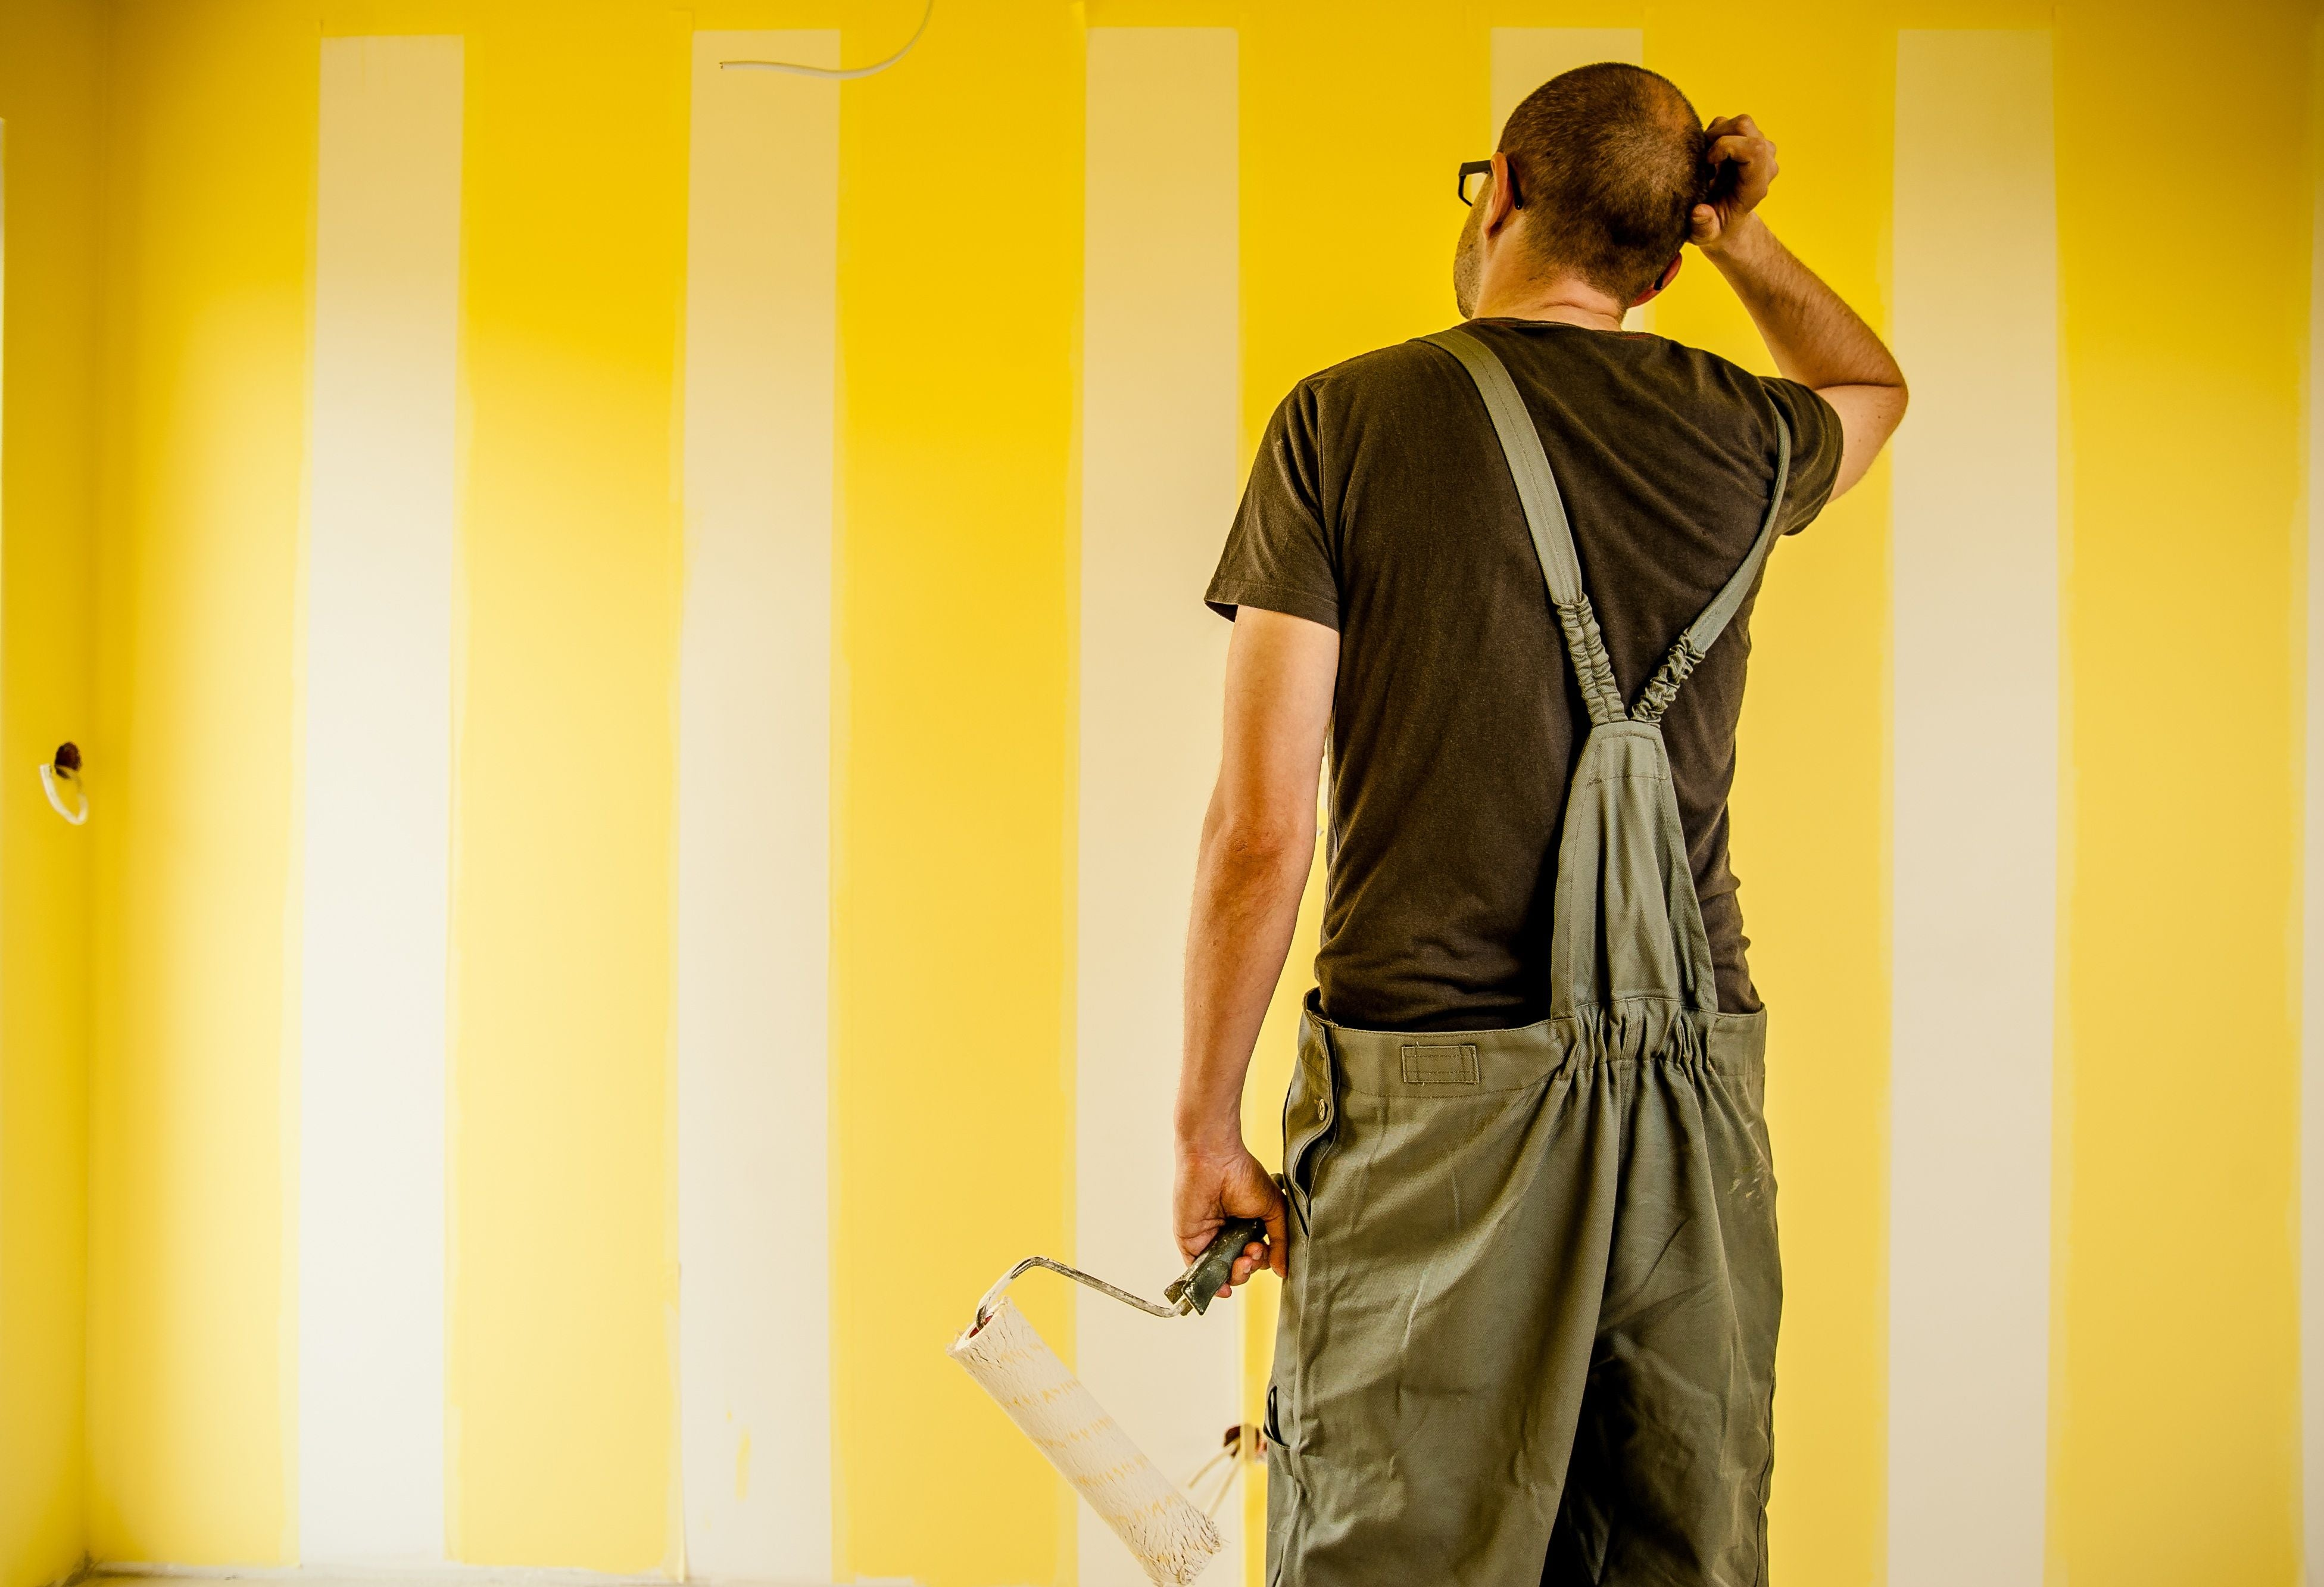 Man stares at the yellow wall where paint is in progress determing to paint baseboards or wall first. Bend Tool Co.